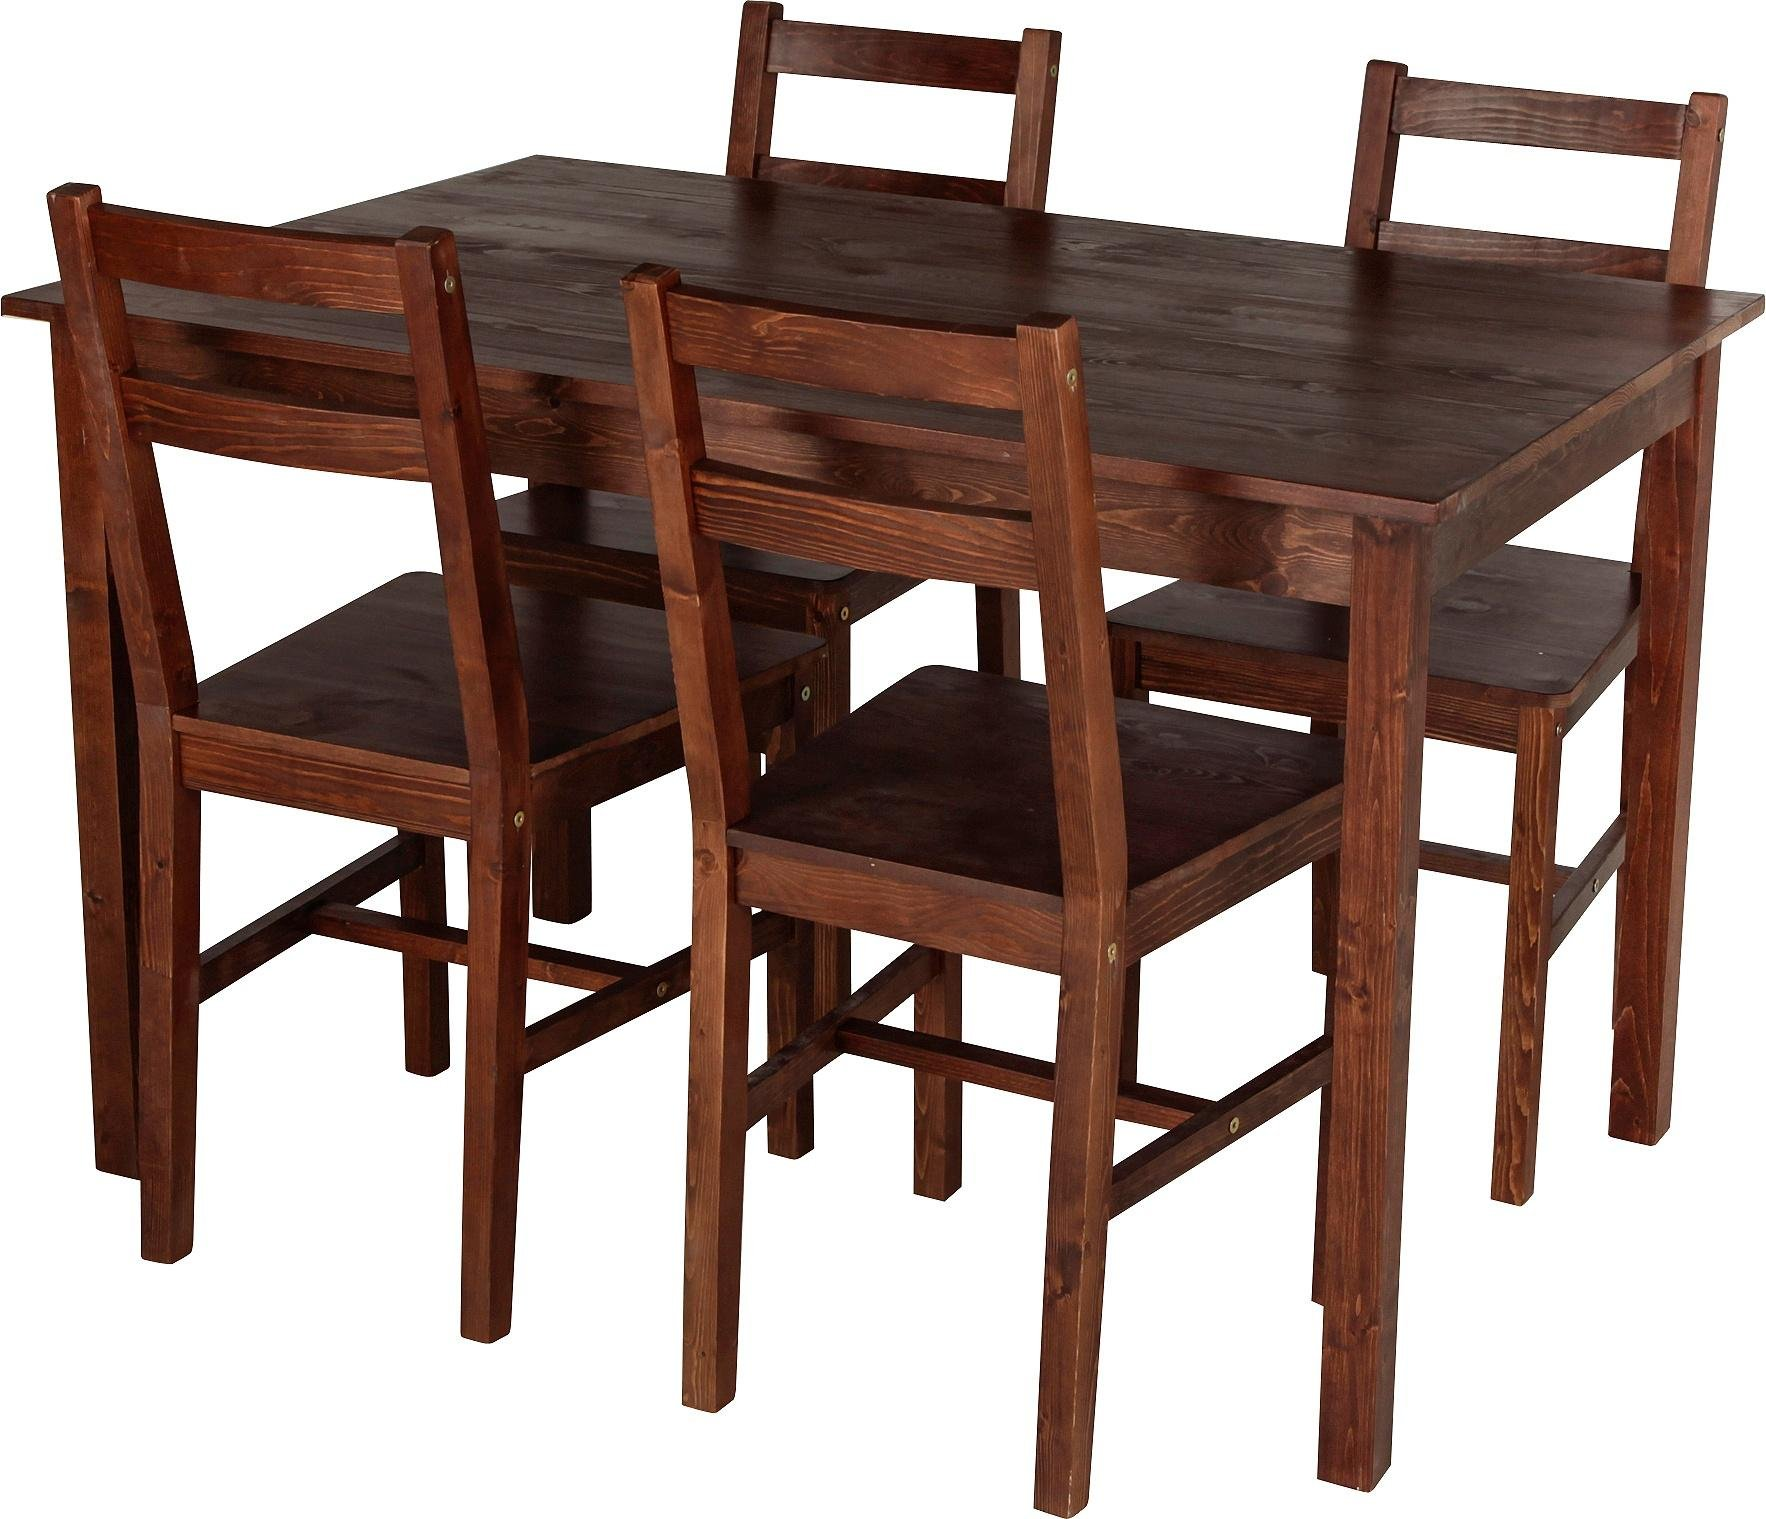 buy home raye solid wood dining table & 4 chairs - dark pine at